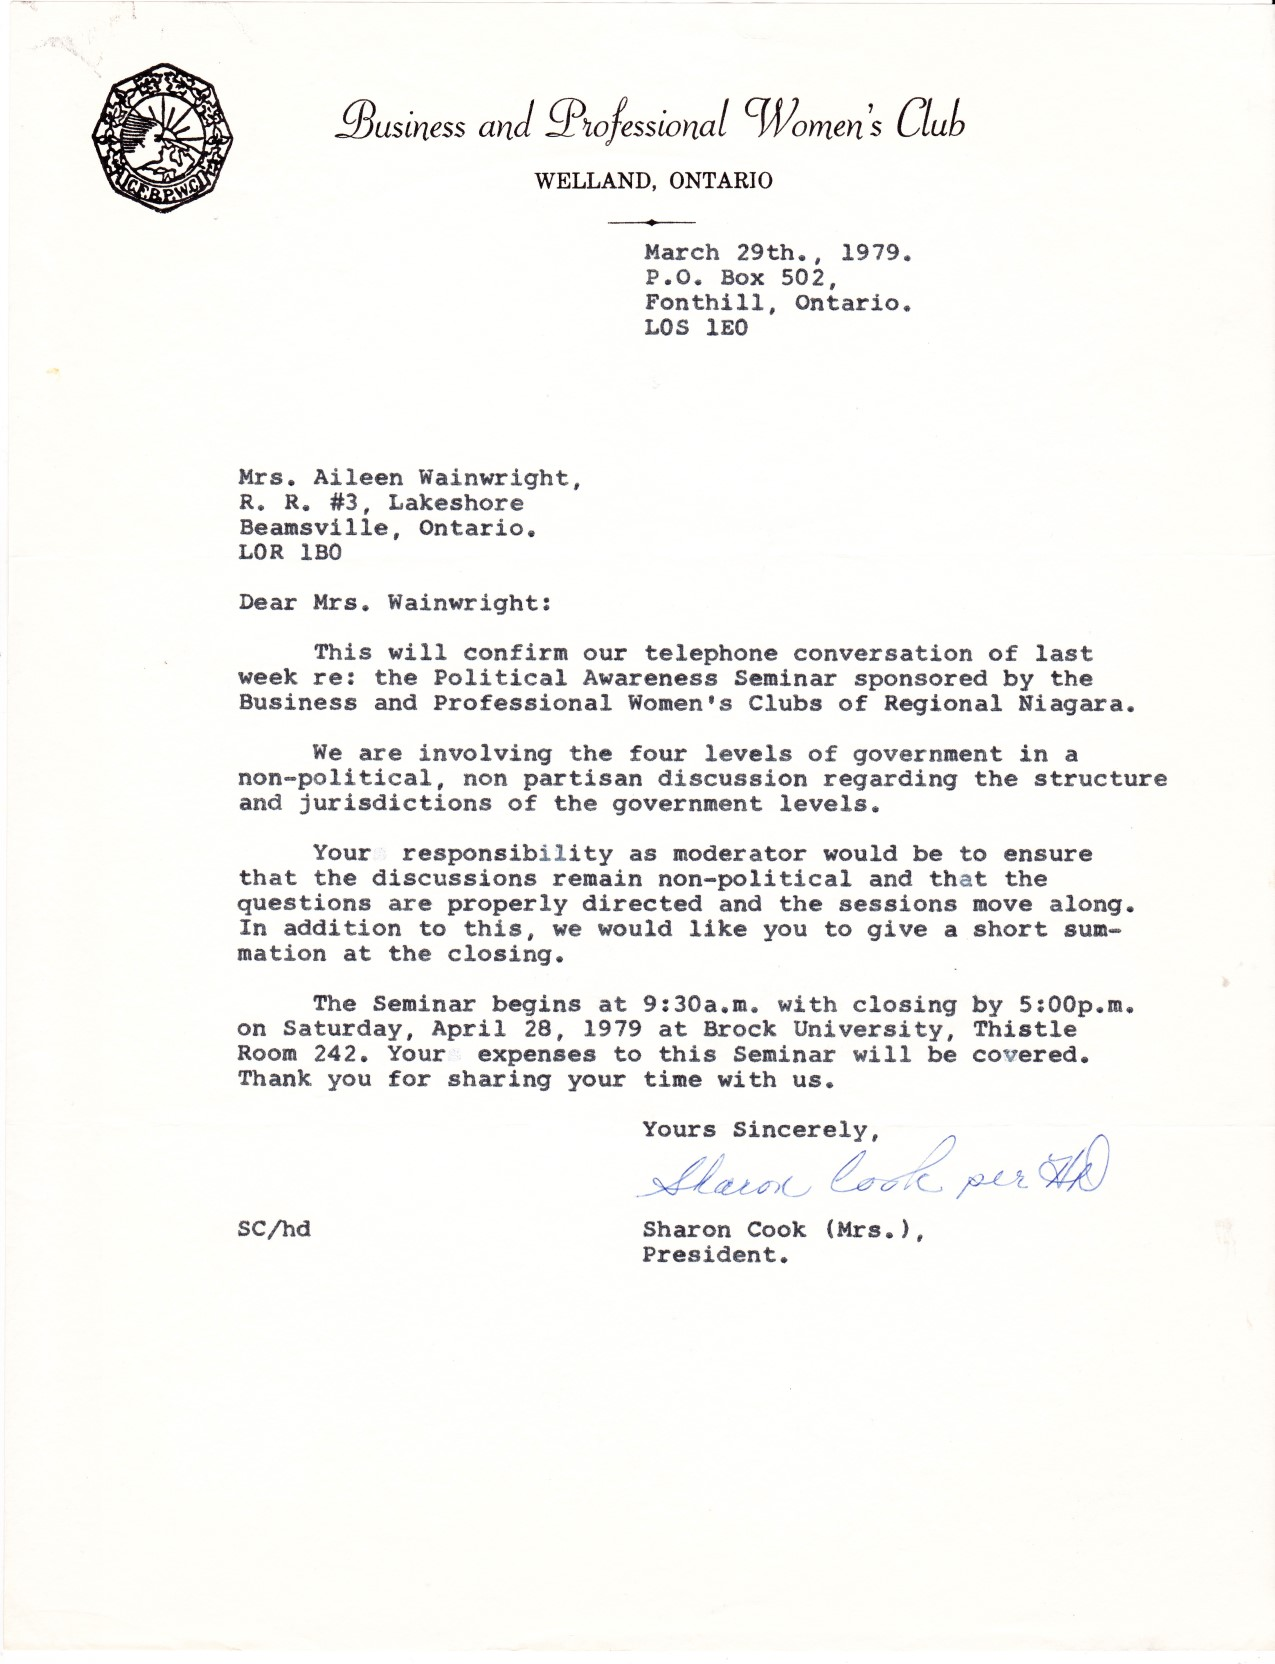 Letter to Aline from Business and Professional Women's Club - Moderator April 28, 1979- date March 29, 1979